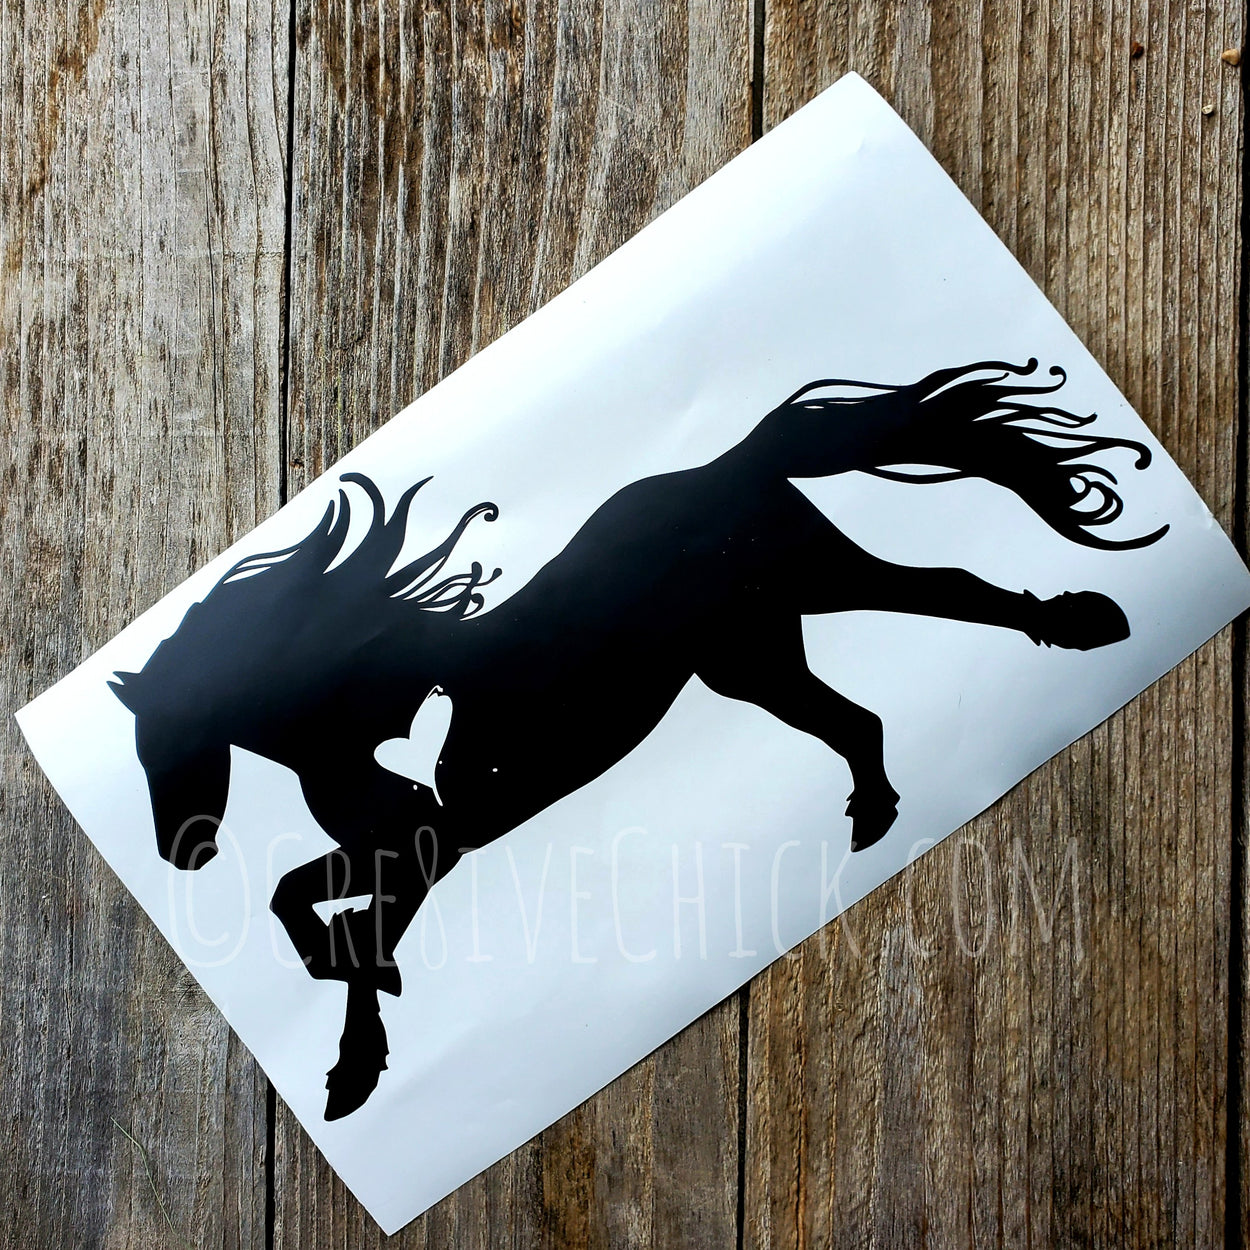 Horse decals by The Cre8ive Chick